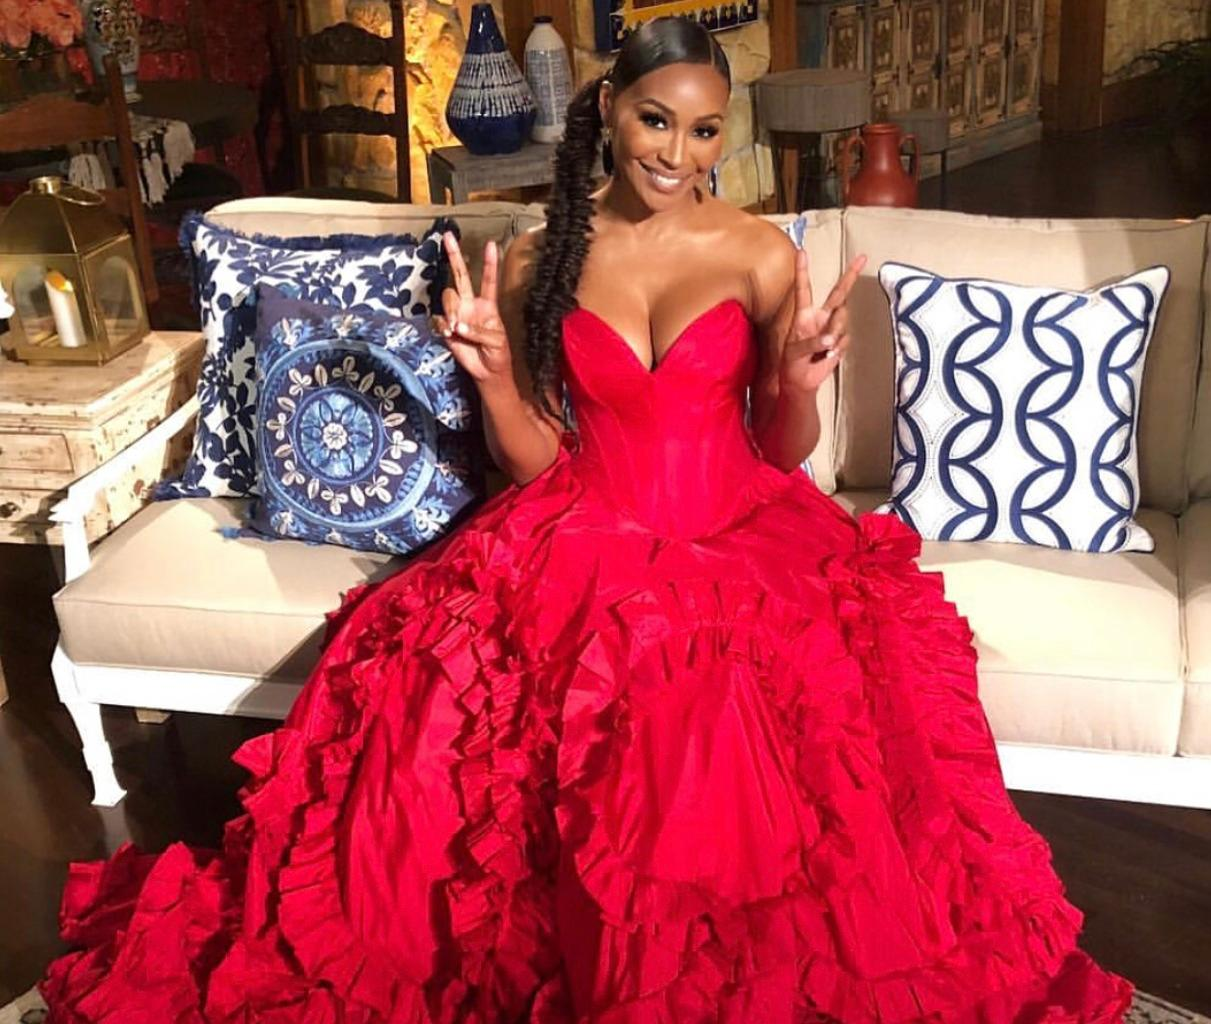 Cynthia Bailey's Latest Photo Has Fans Praising Her In The Comments: 'You're So Hot!'